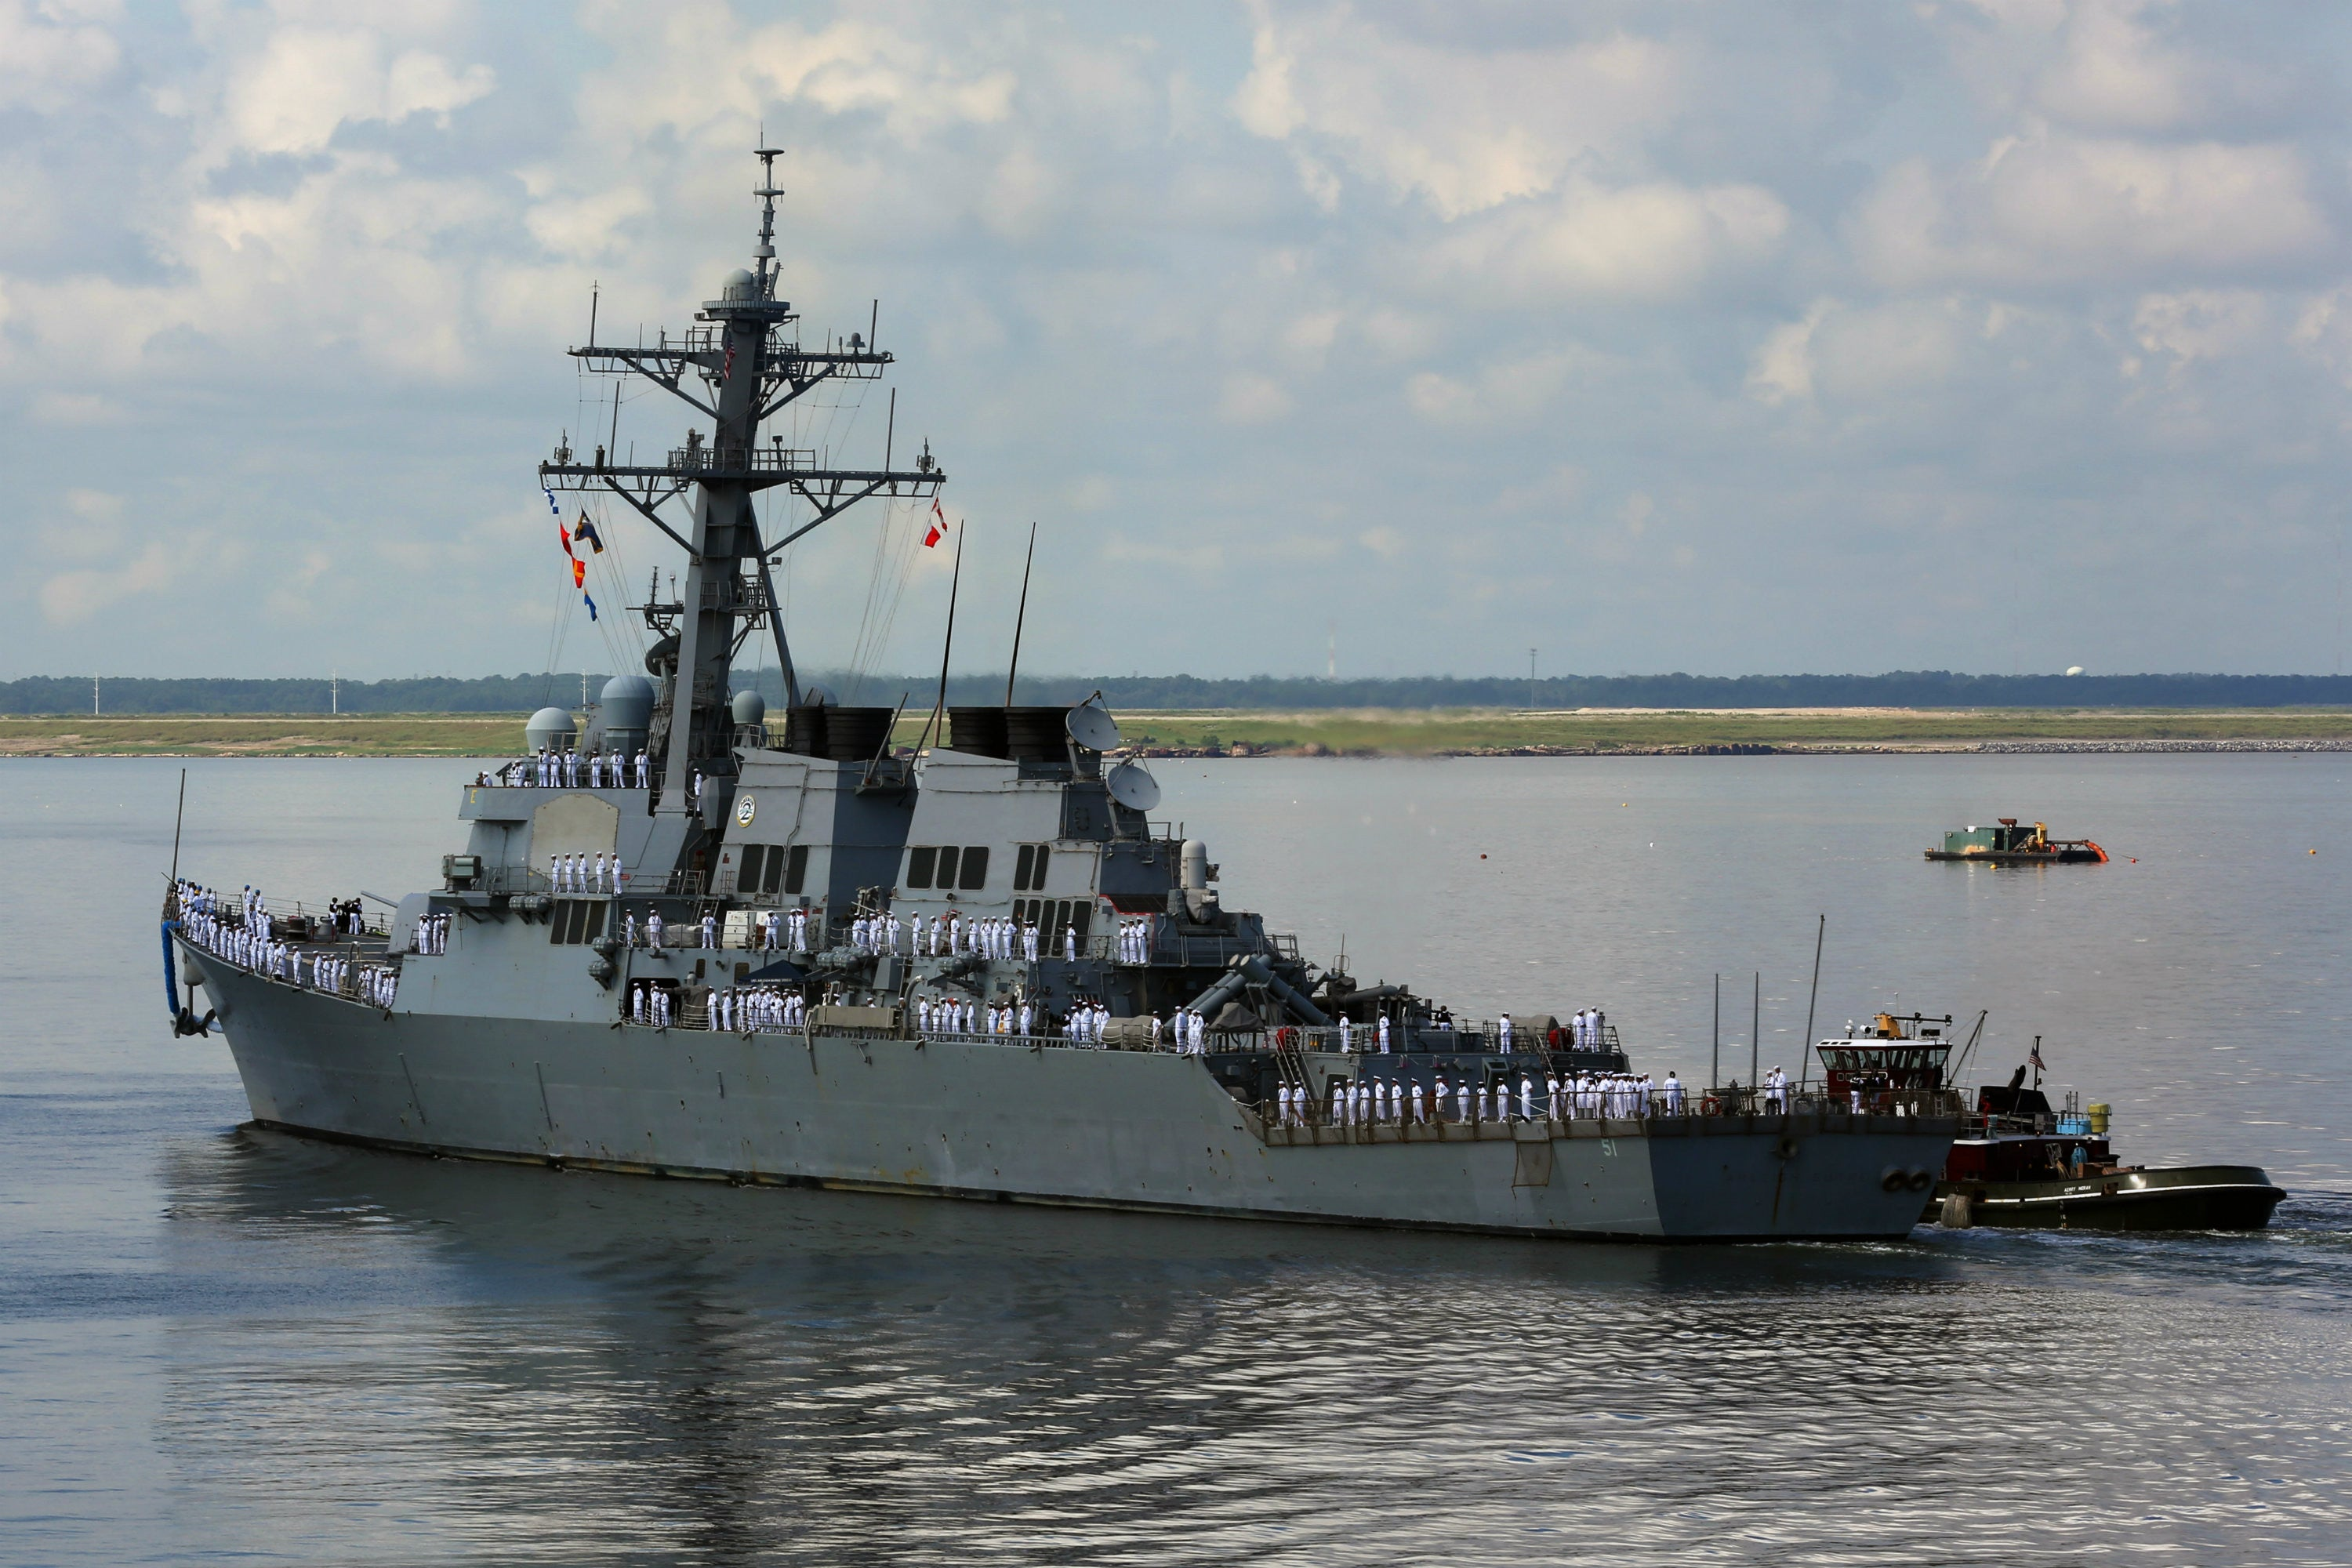 "USS DeWert FFG-45 Transits the Maumee River Toledo, Ohio August 23, 2012 - 8 x 12"" Photograph"